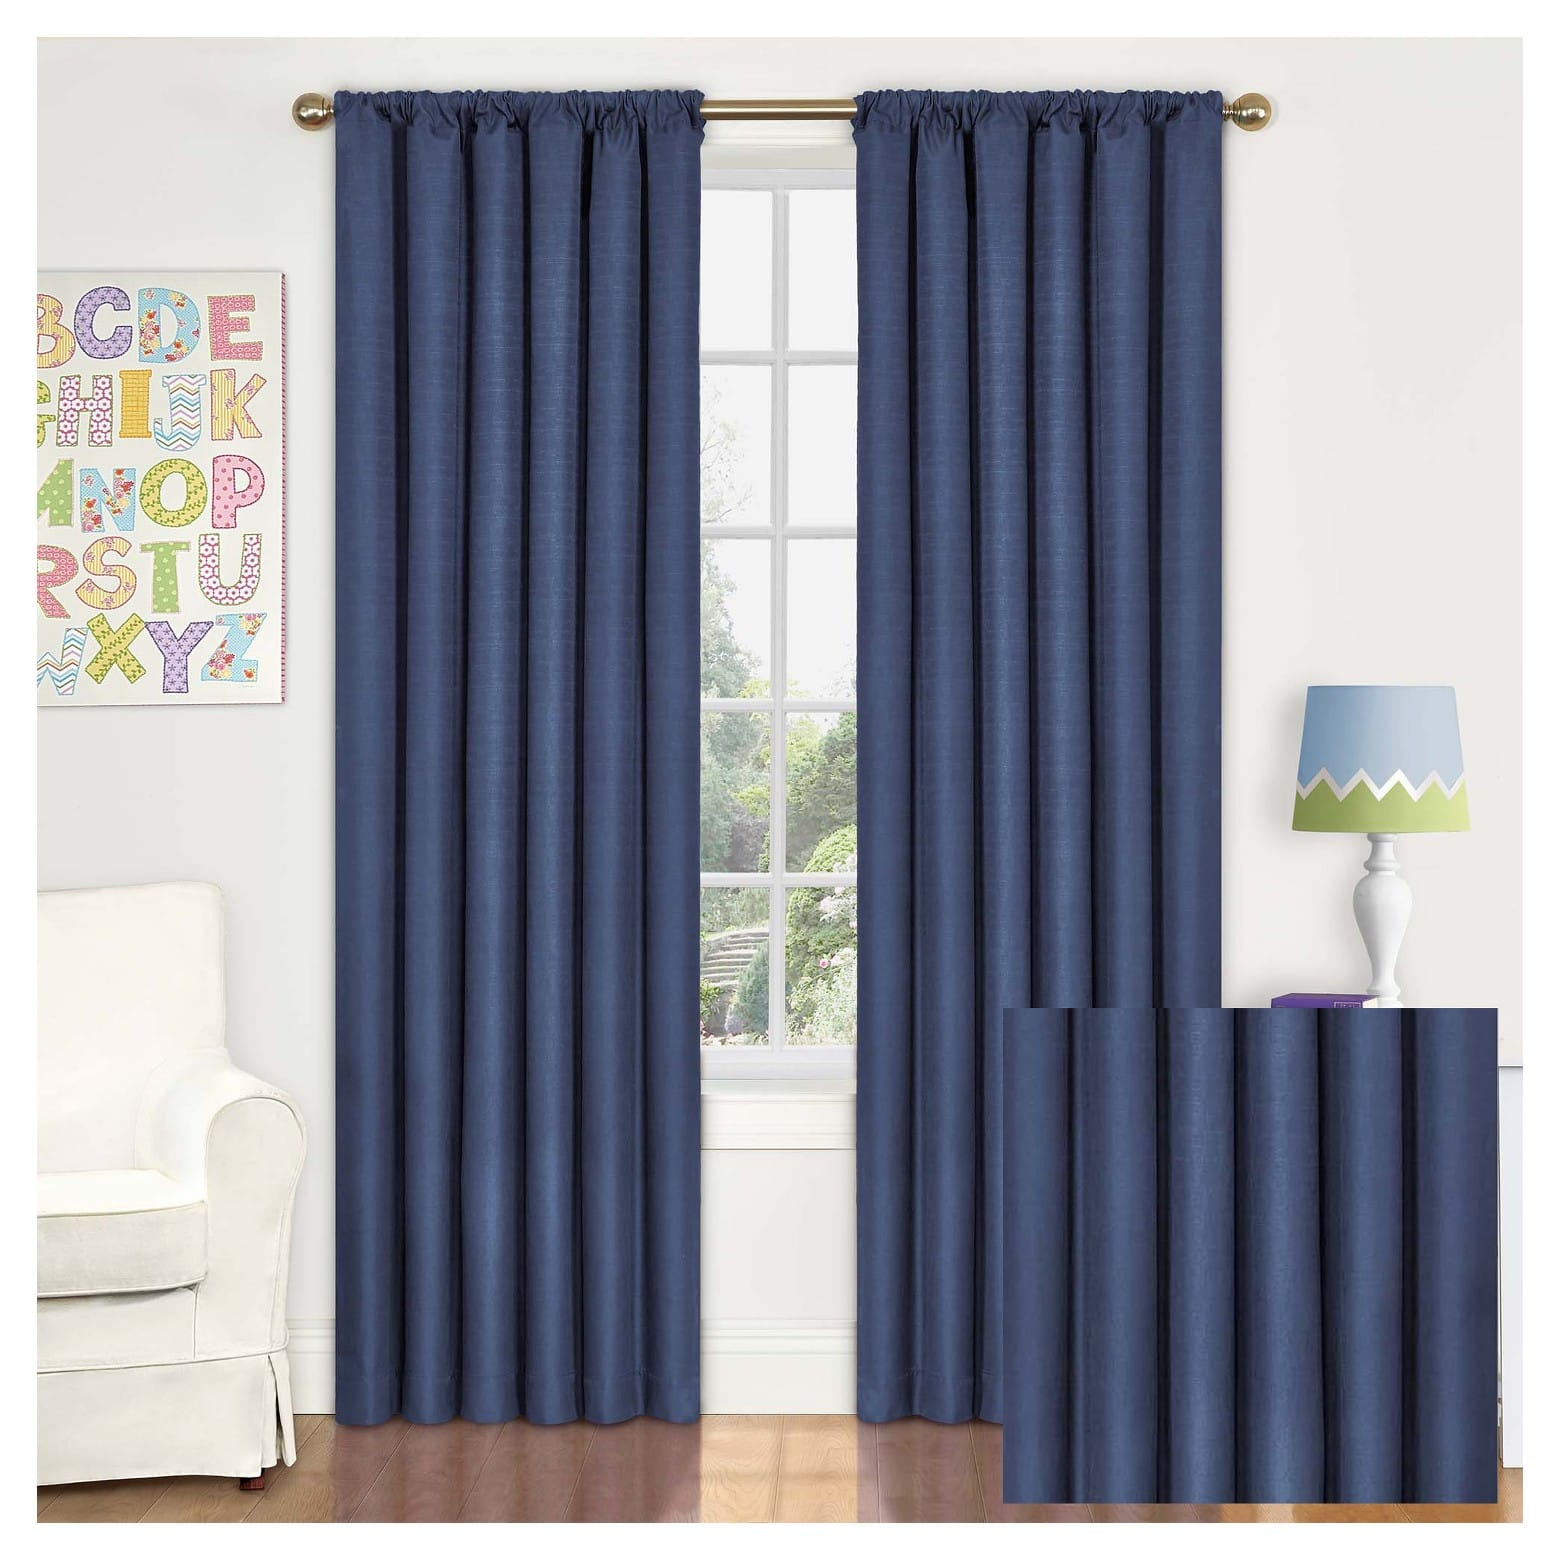 "Eclipse MyScene Kendall Thermaback Denim 42"" x 84"" Curtain Panel $5.33 ea + Free S/H"